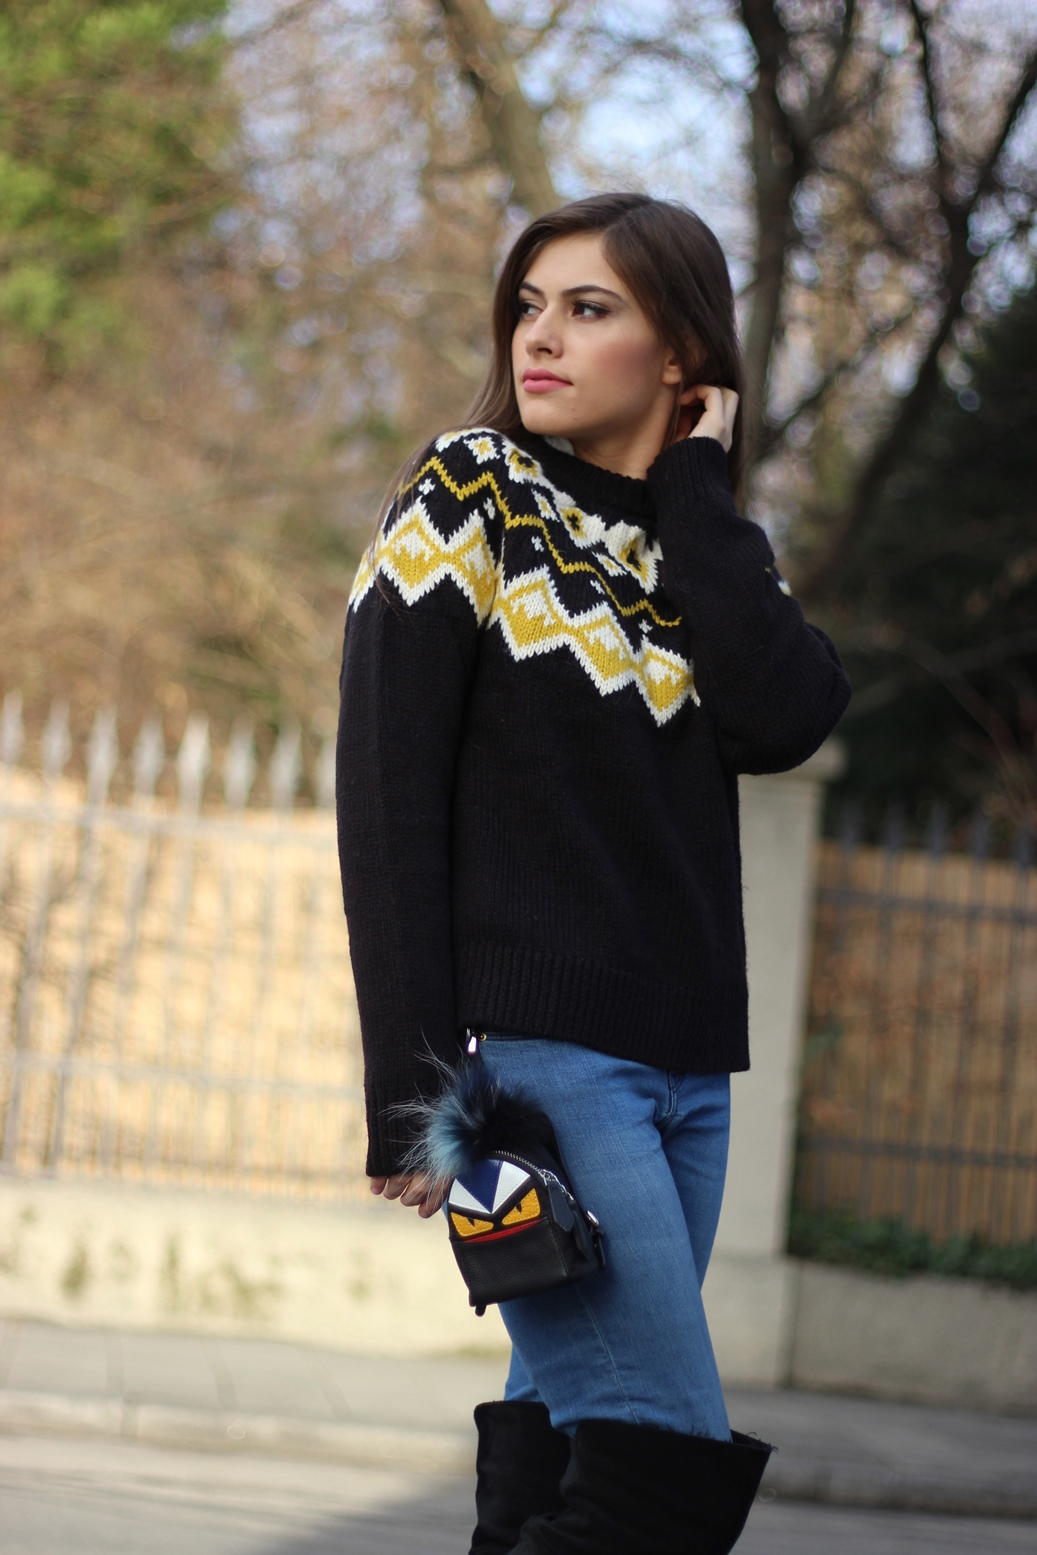 asos-sweater-streetstyle-germany-europe-fendi-bagcharm-bagpack-blog